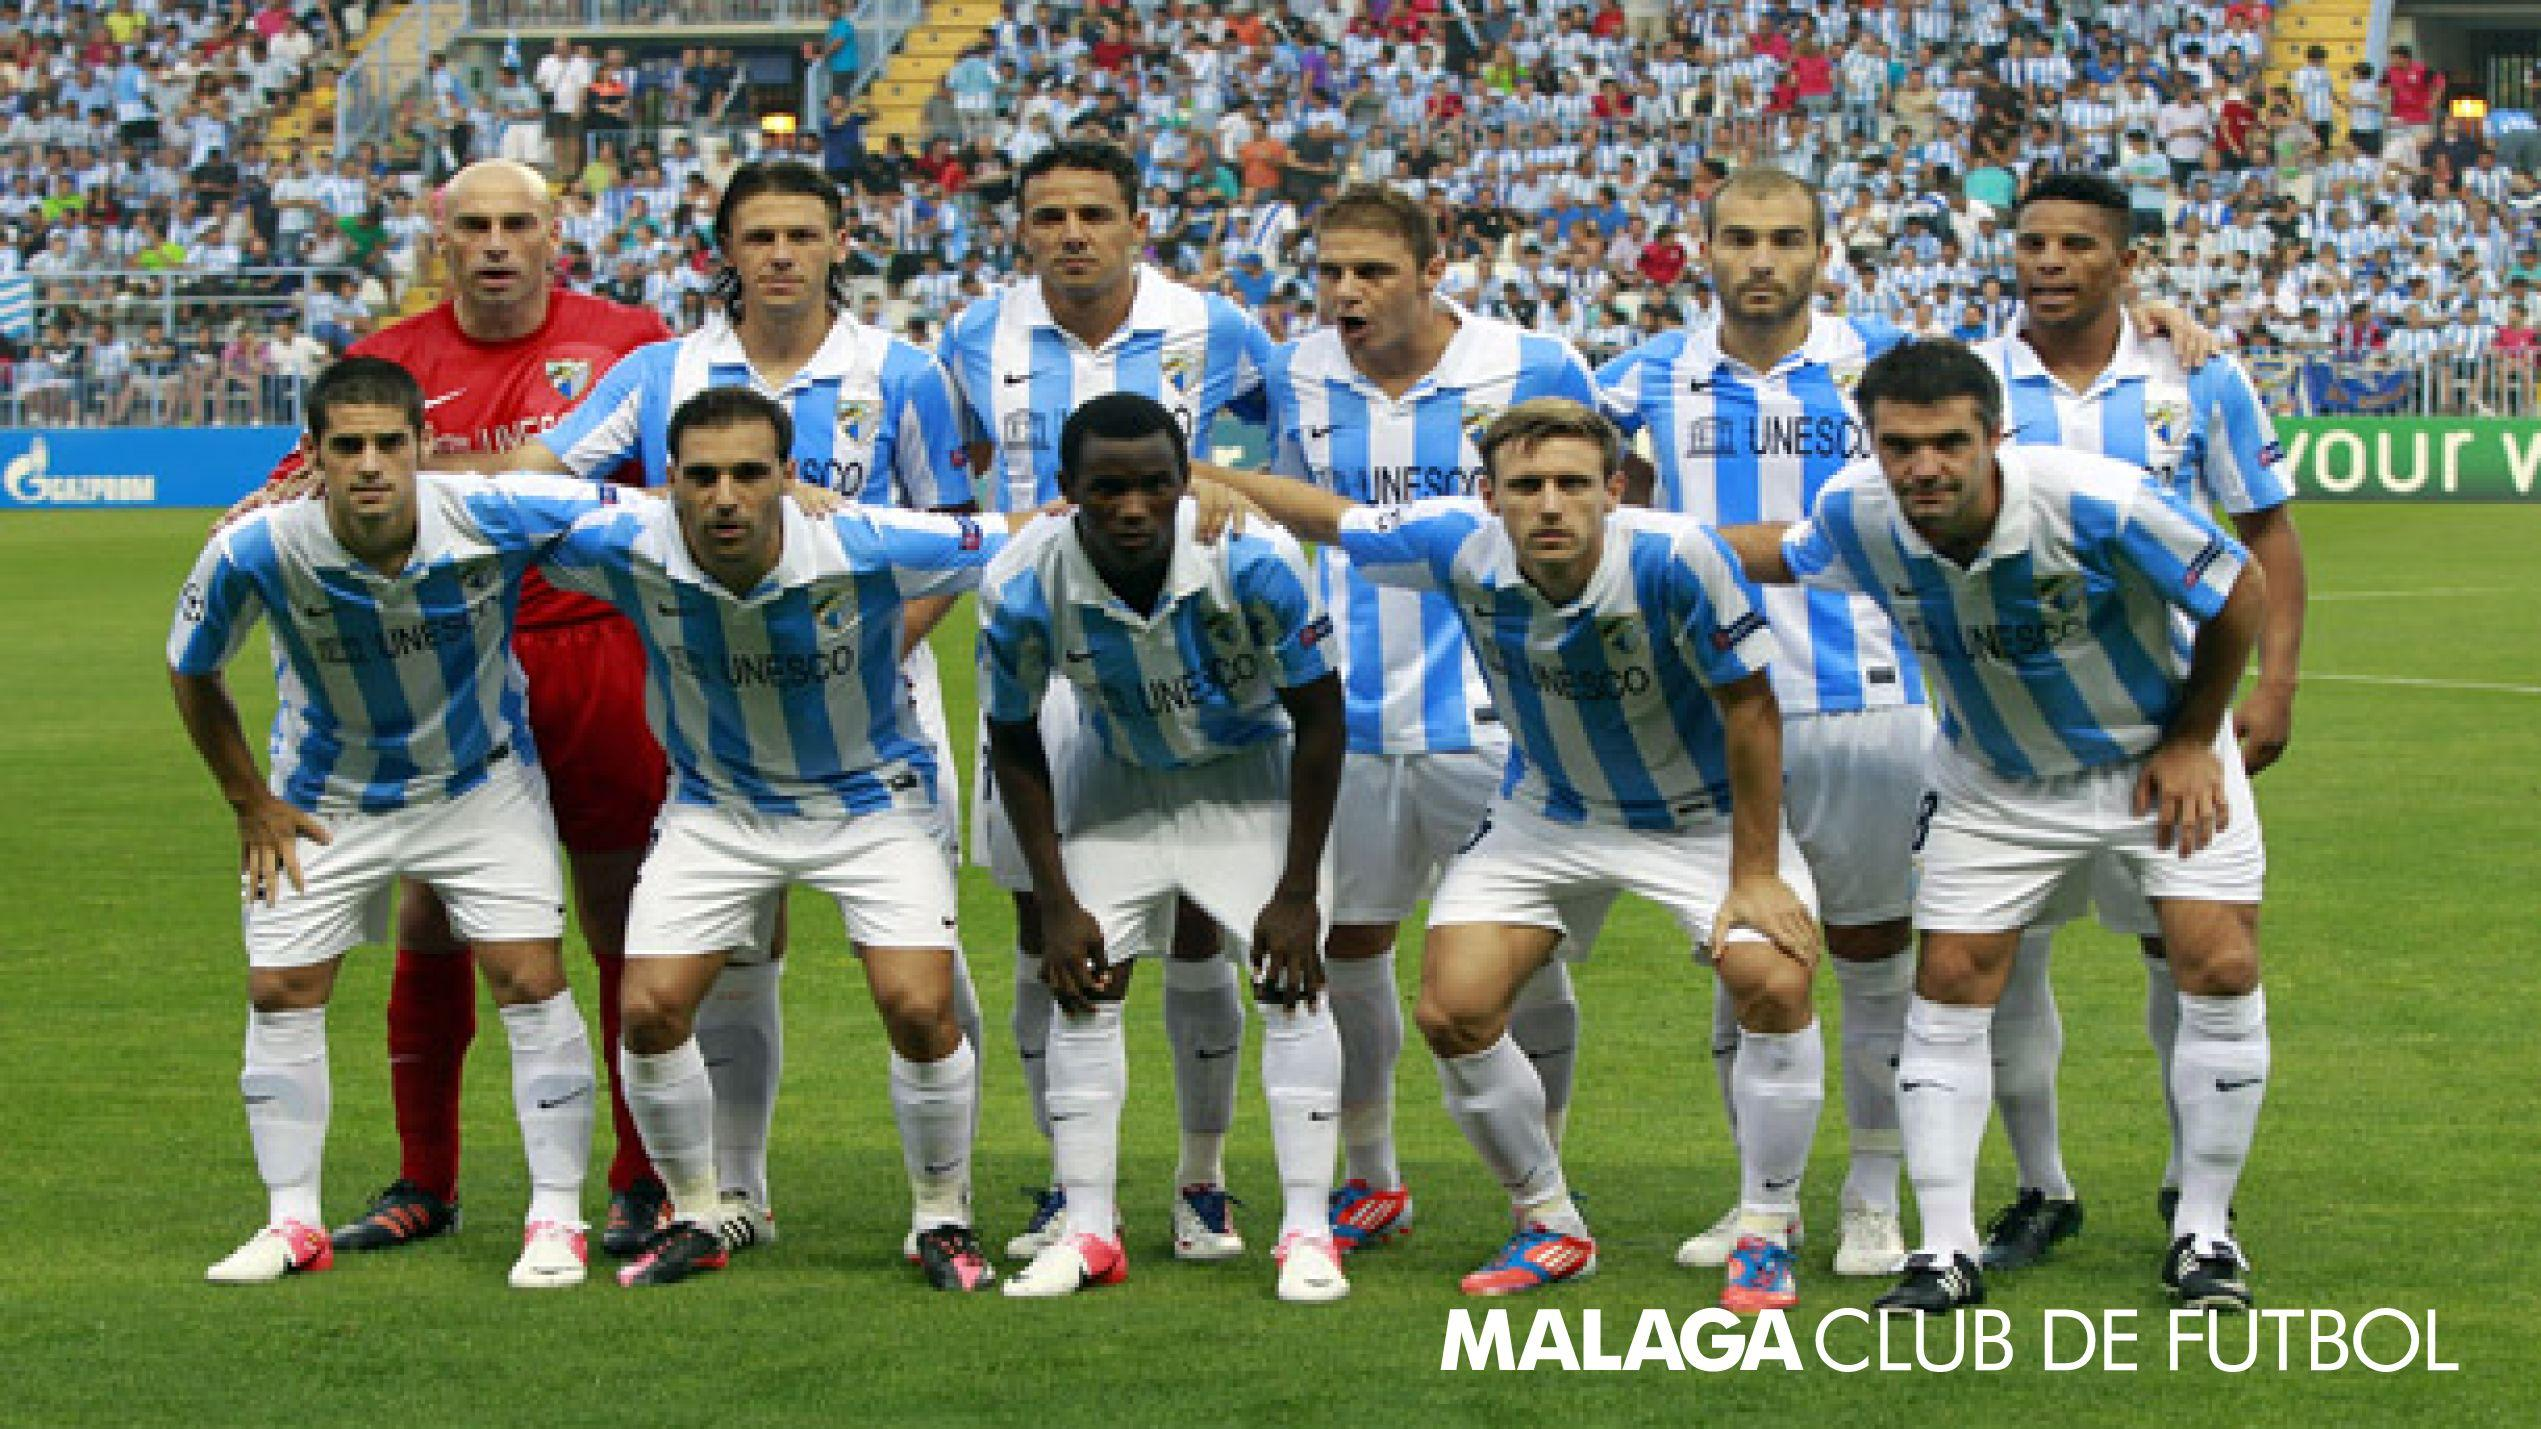 Malaga Fc Squad Wallpapers HD 2014